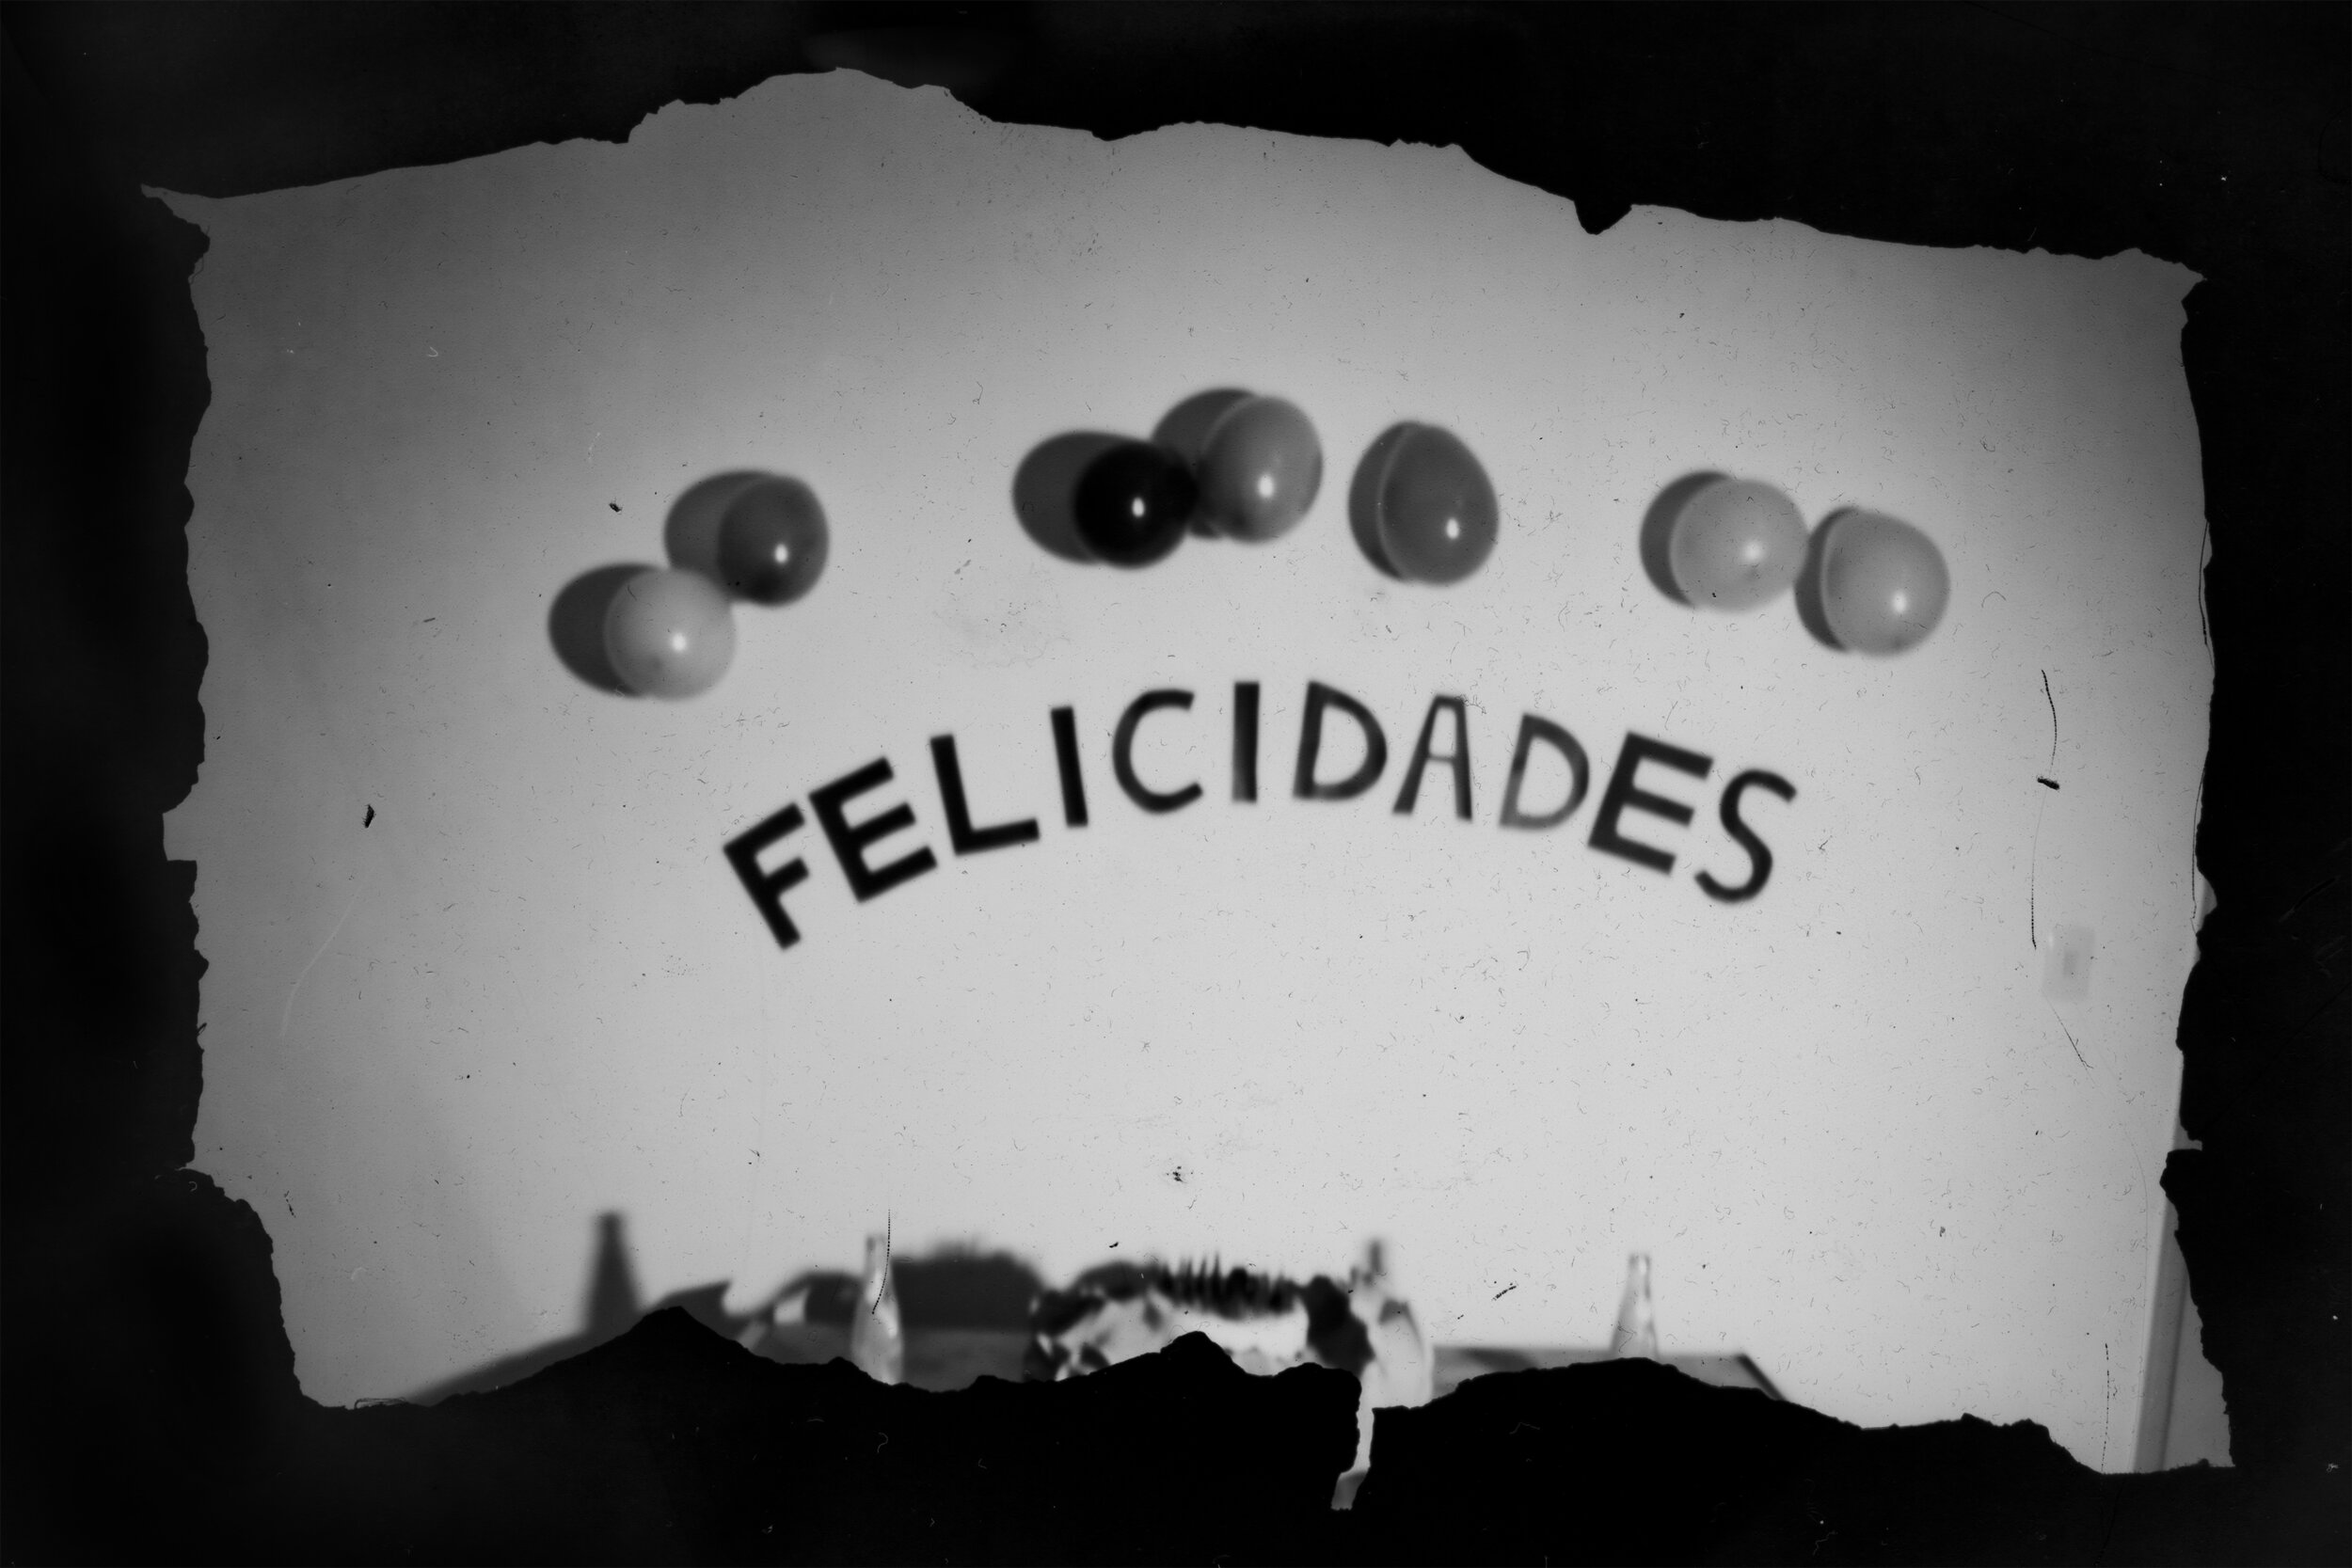 detail-of-felicidades-happiness-by-emidio-contente-from-artboom-low.jpg